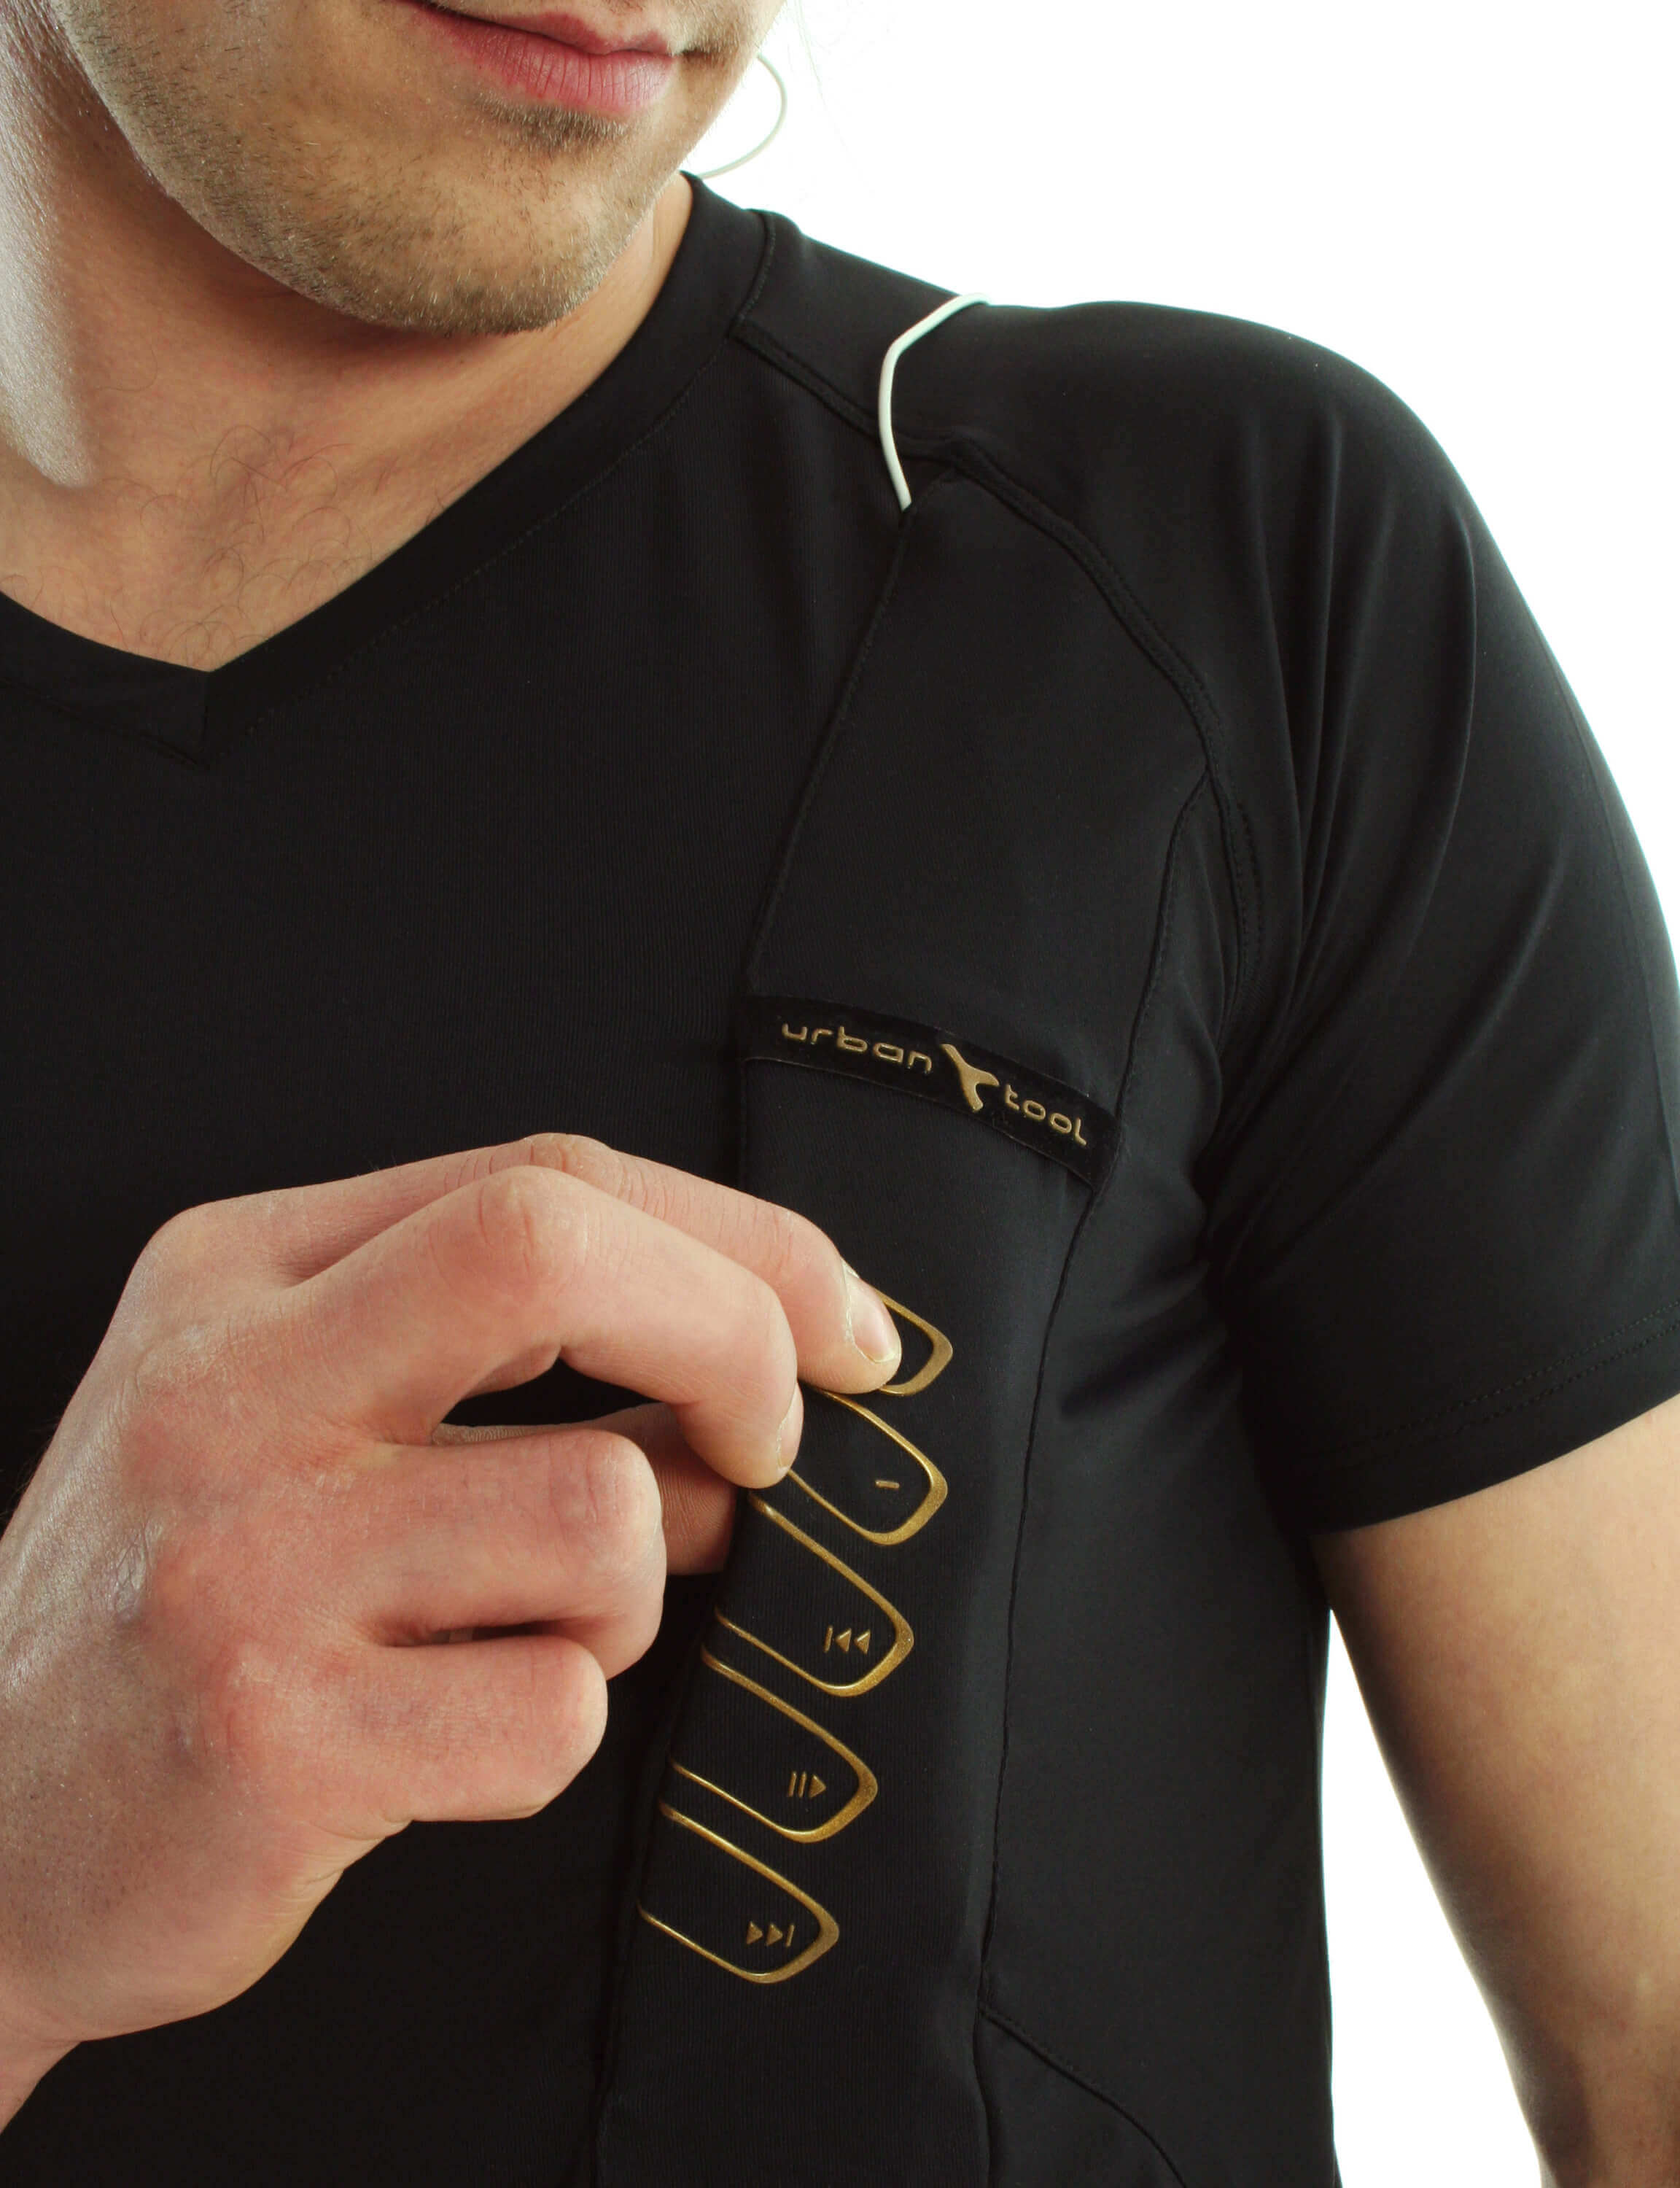 grooveRider wearable shirt